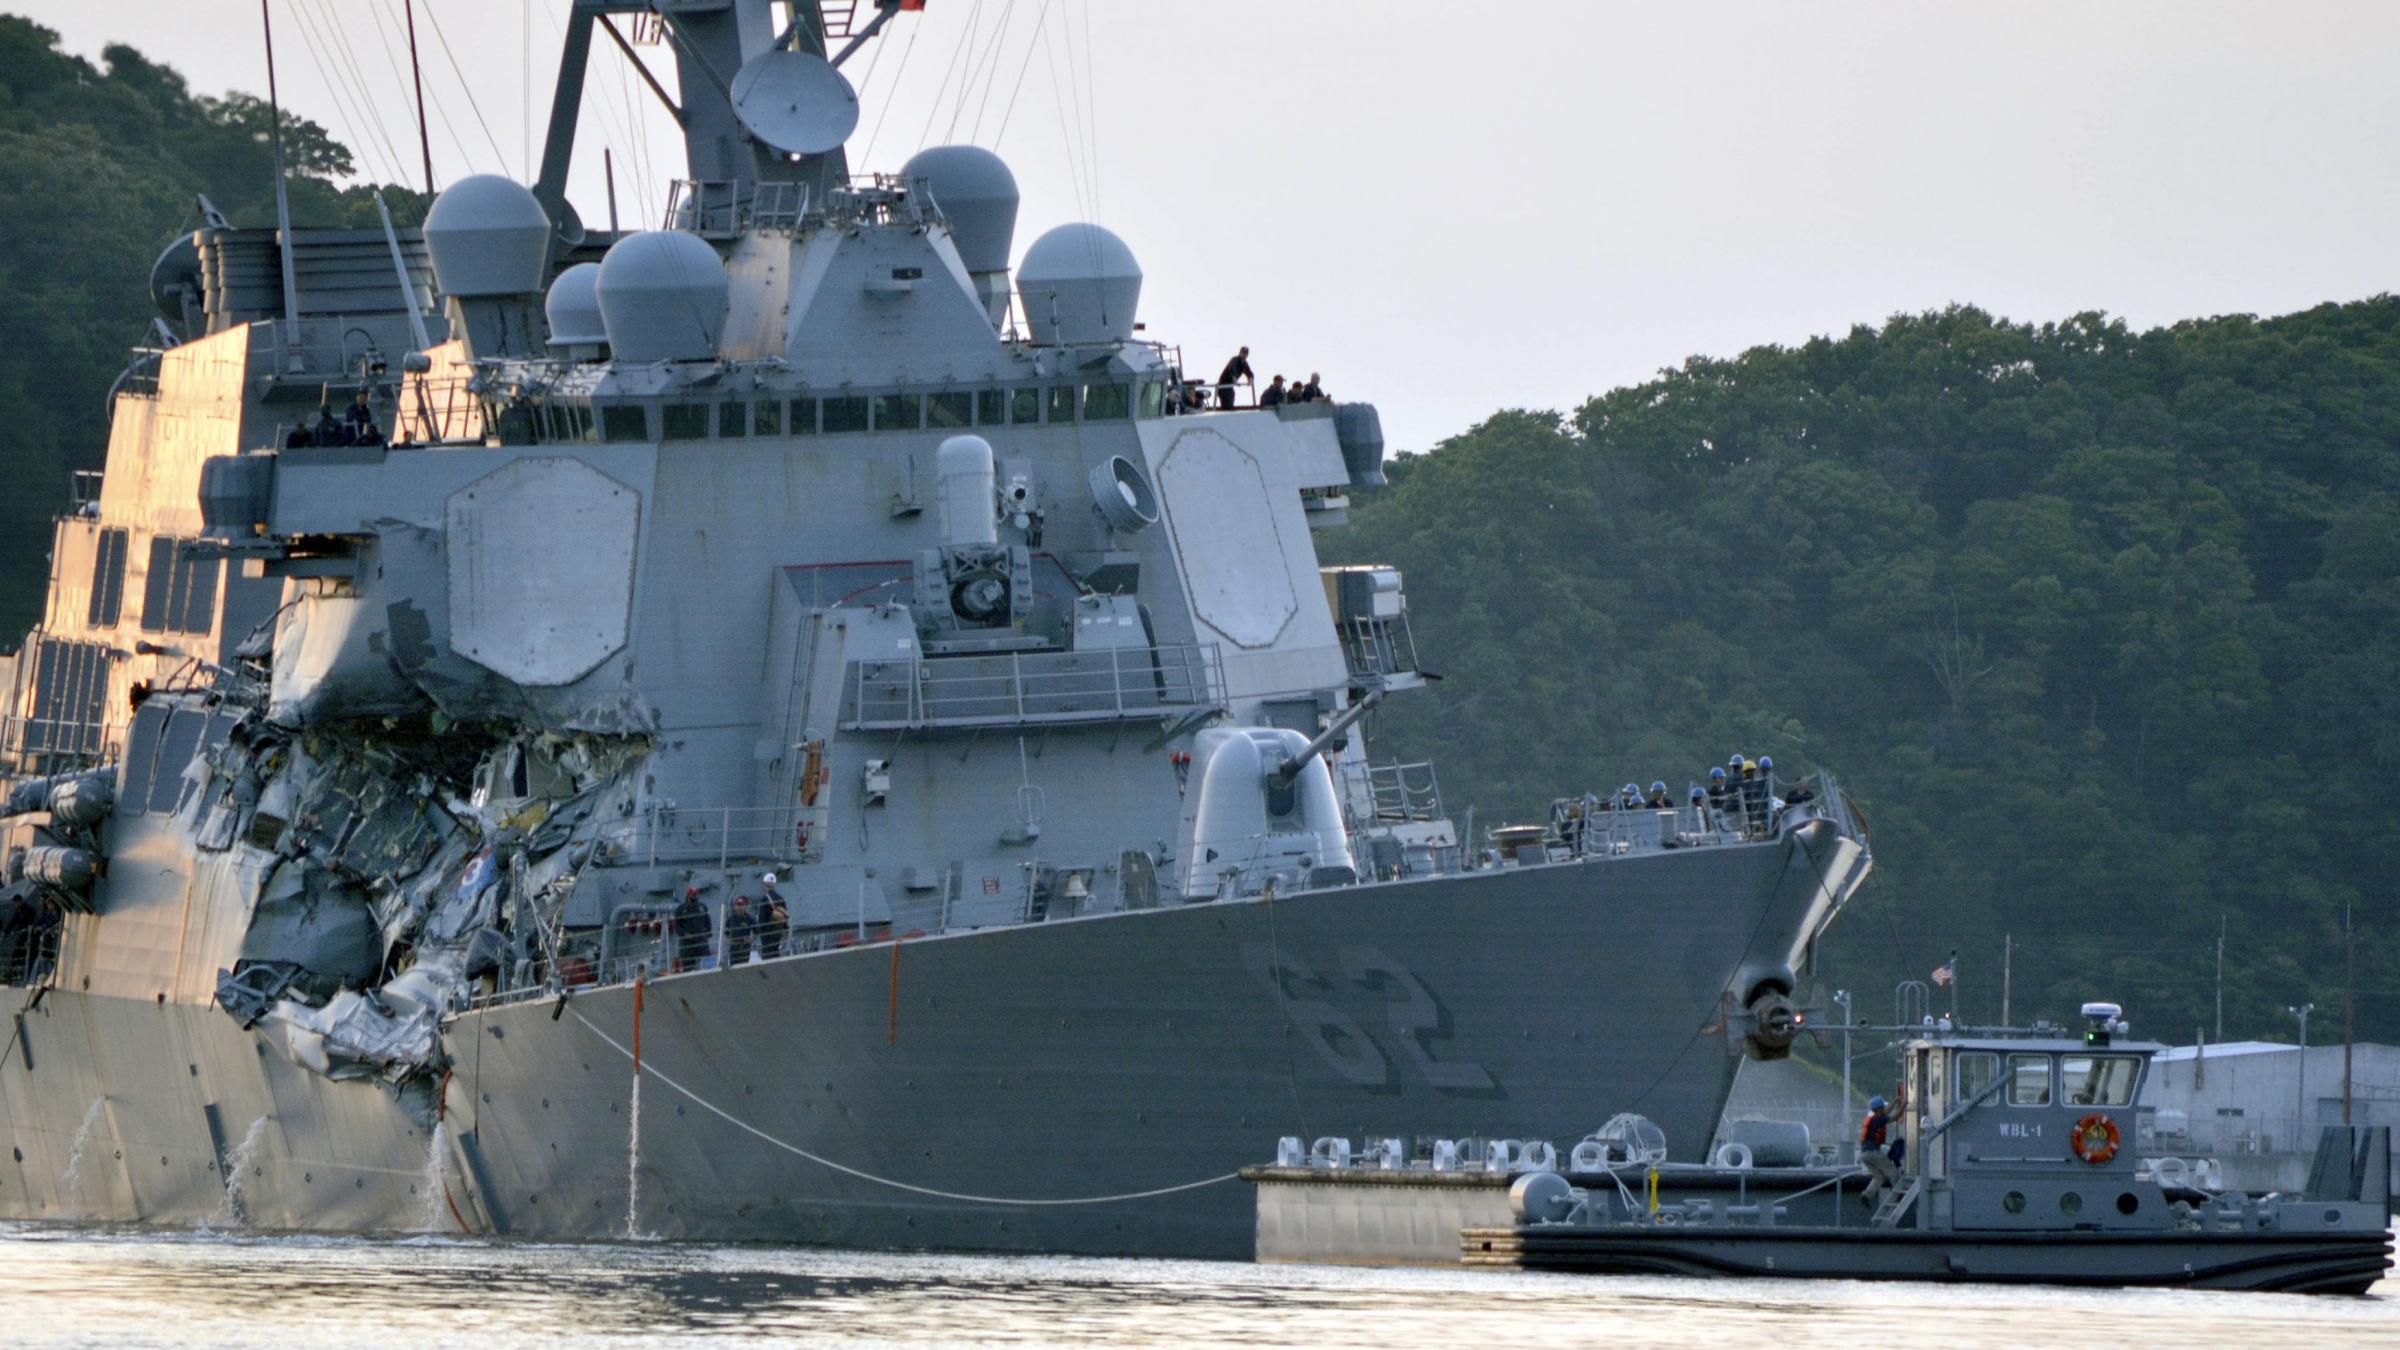 Deadly Navy destroyer collision leaves 7 sailors dead after failed rescue mission